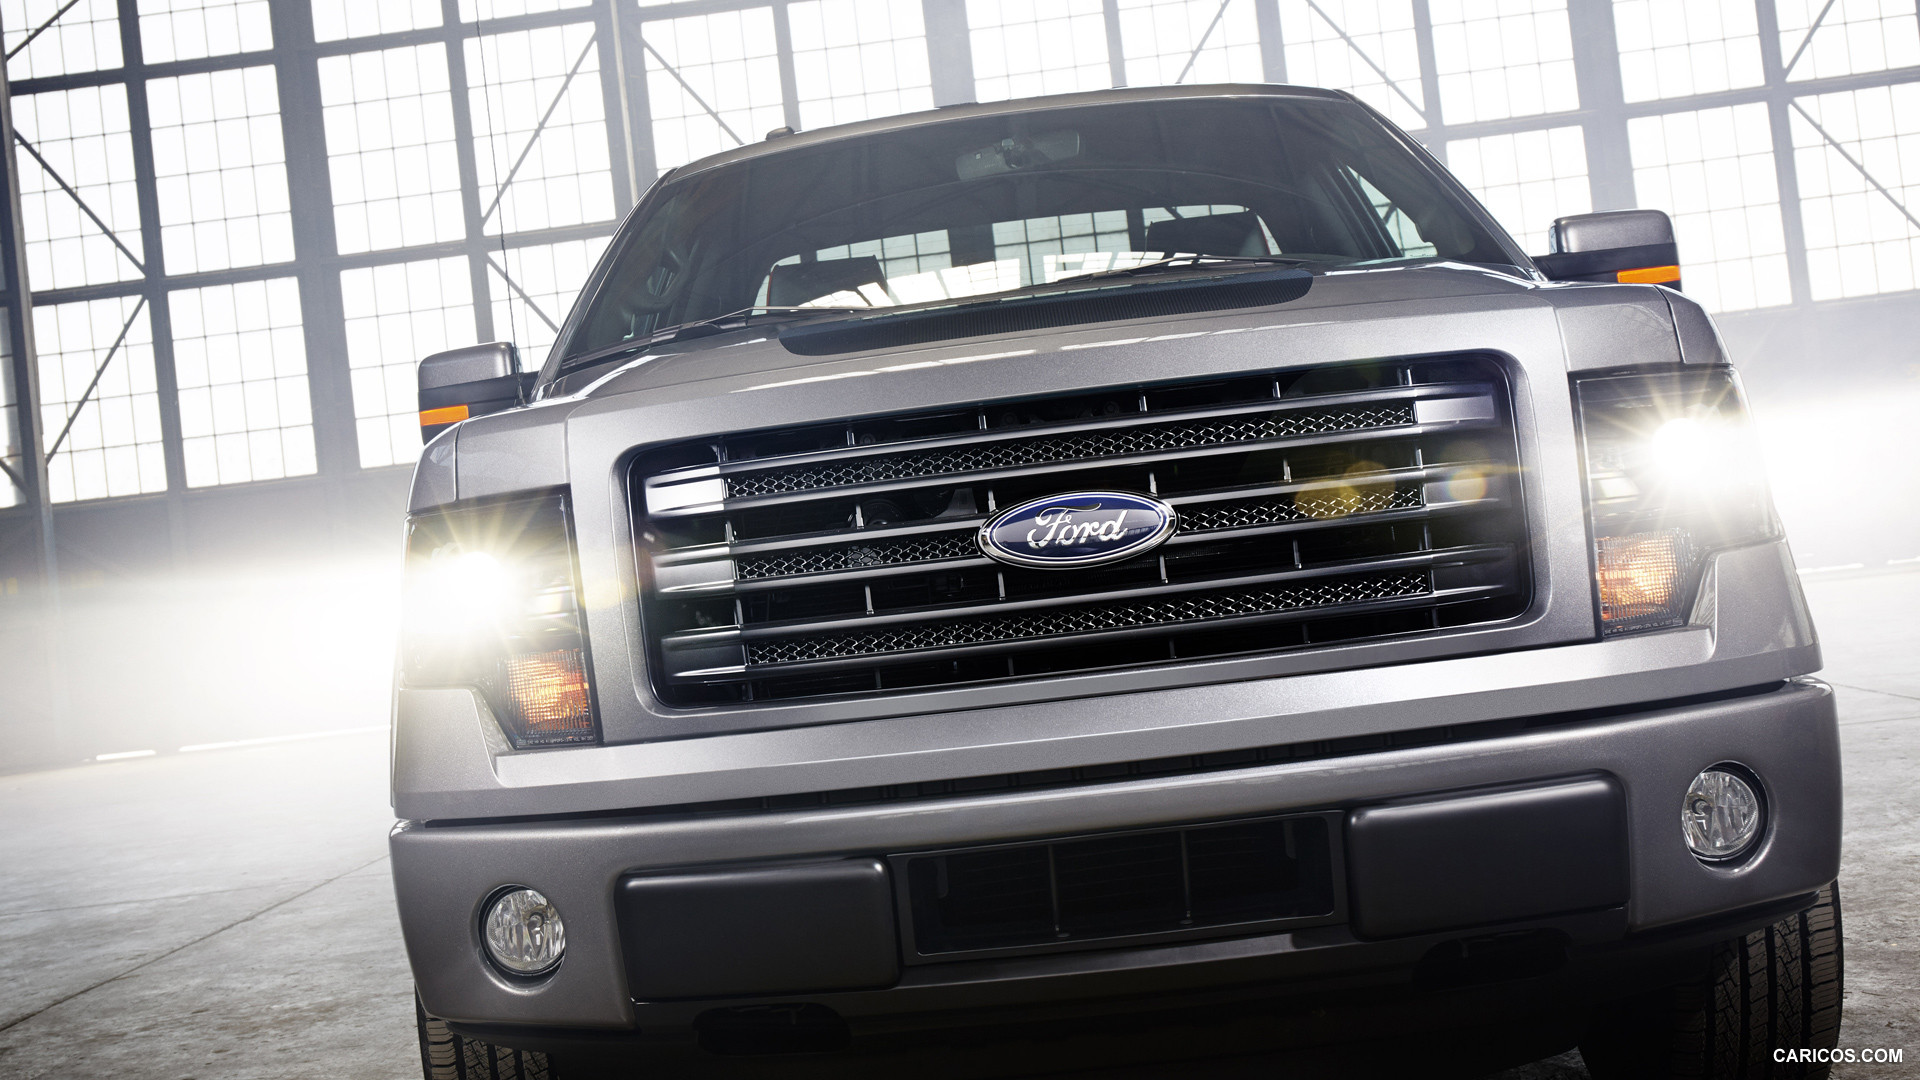 Ford F 150 Tremor picture Ford photo gallery